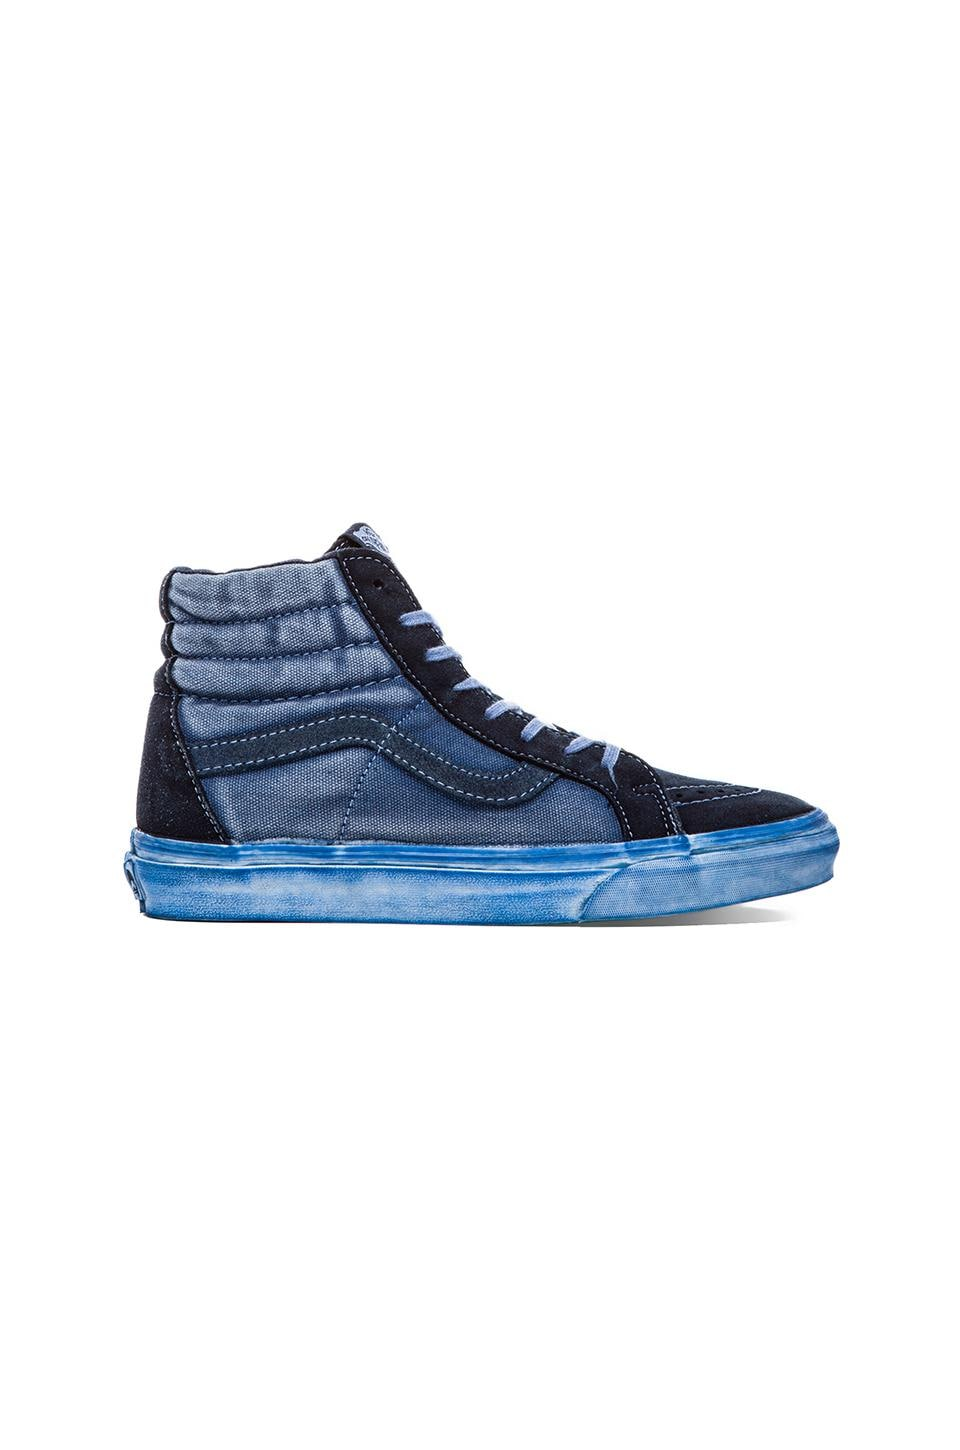 Vans Sk8-Hi Reissue CA Sneaker in Dress Blues